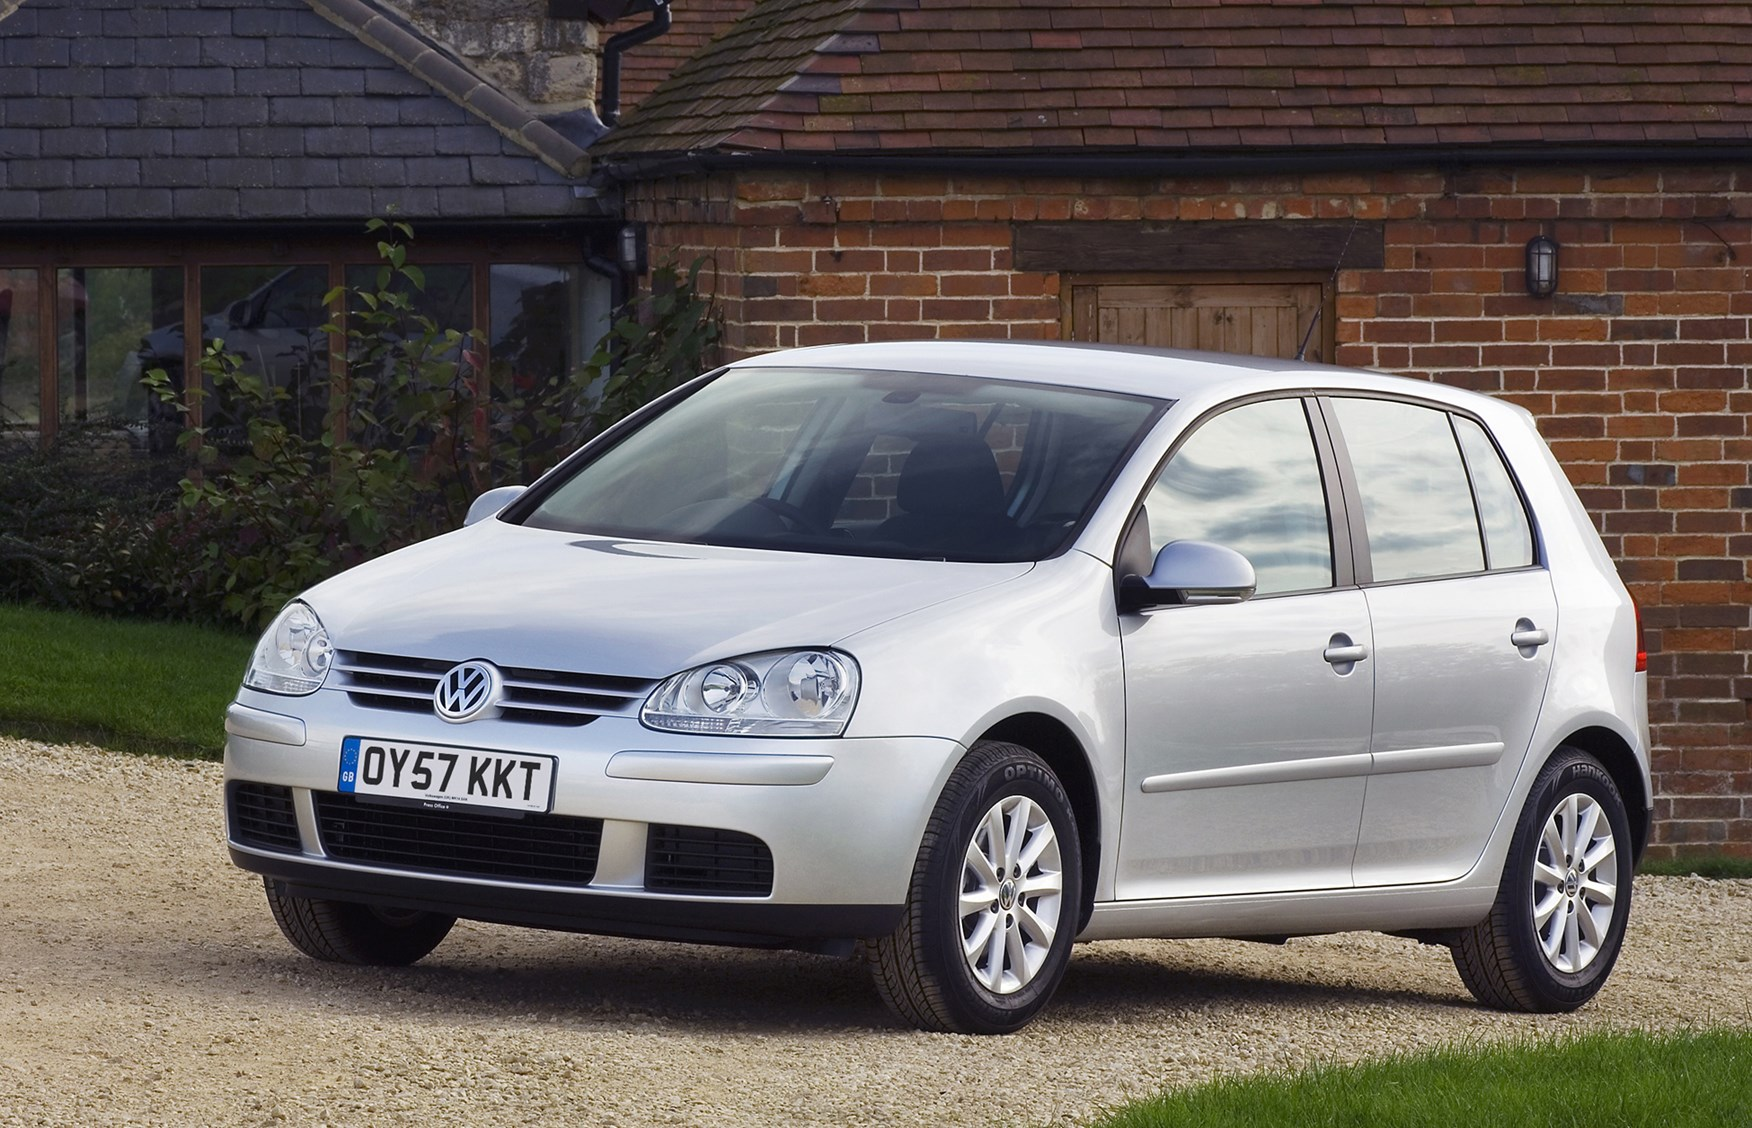 Volkswagen Golf Hatchback Review (2004 - 2008) | Parkers